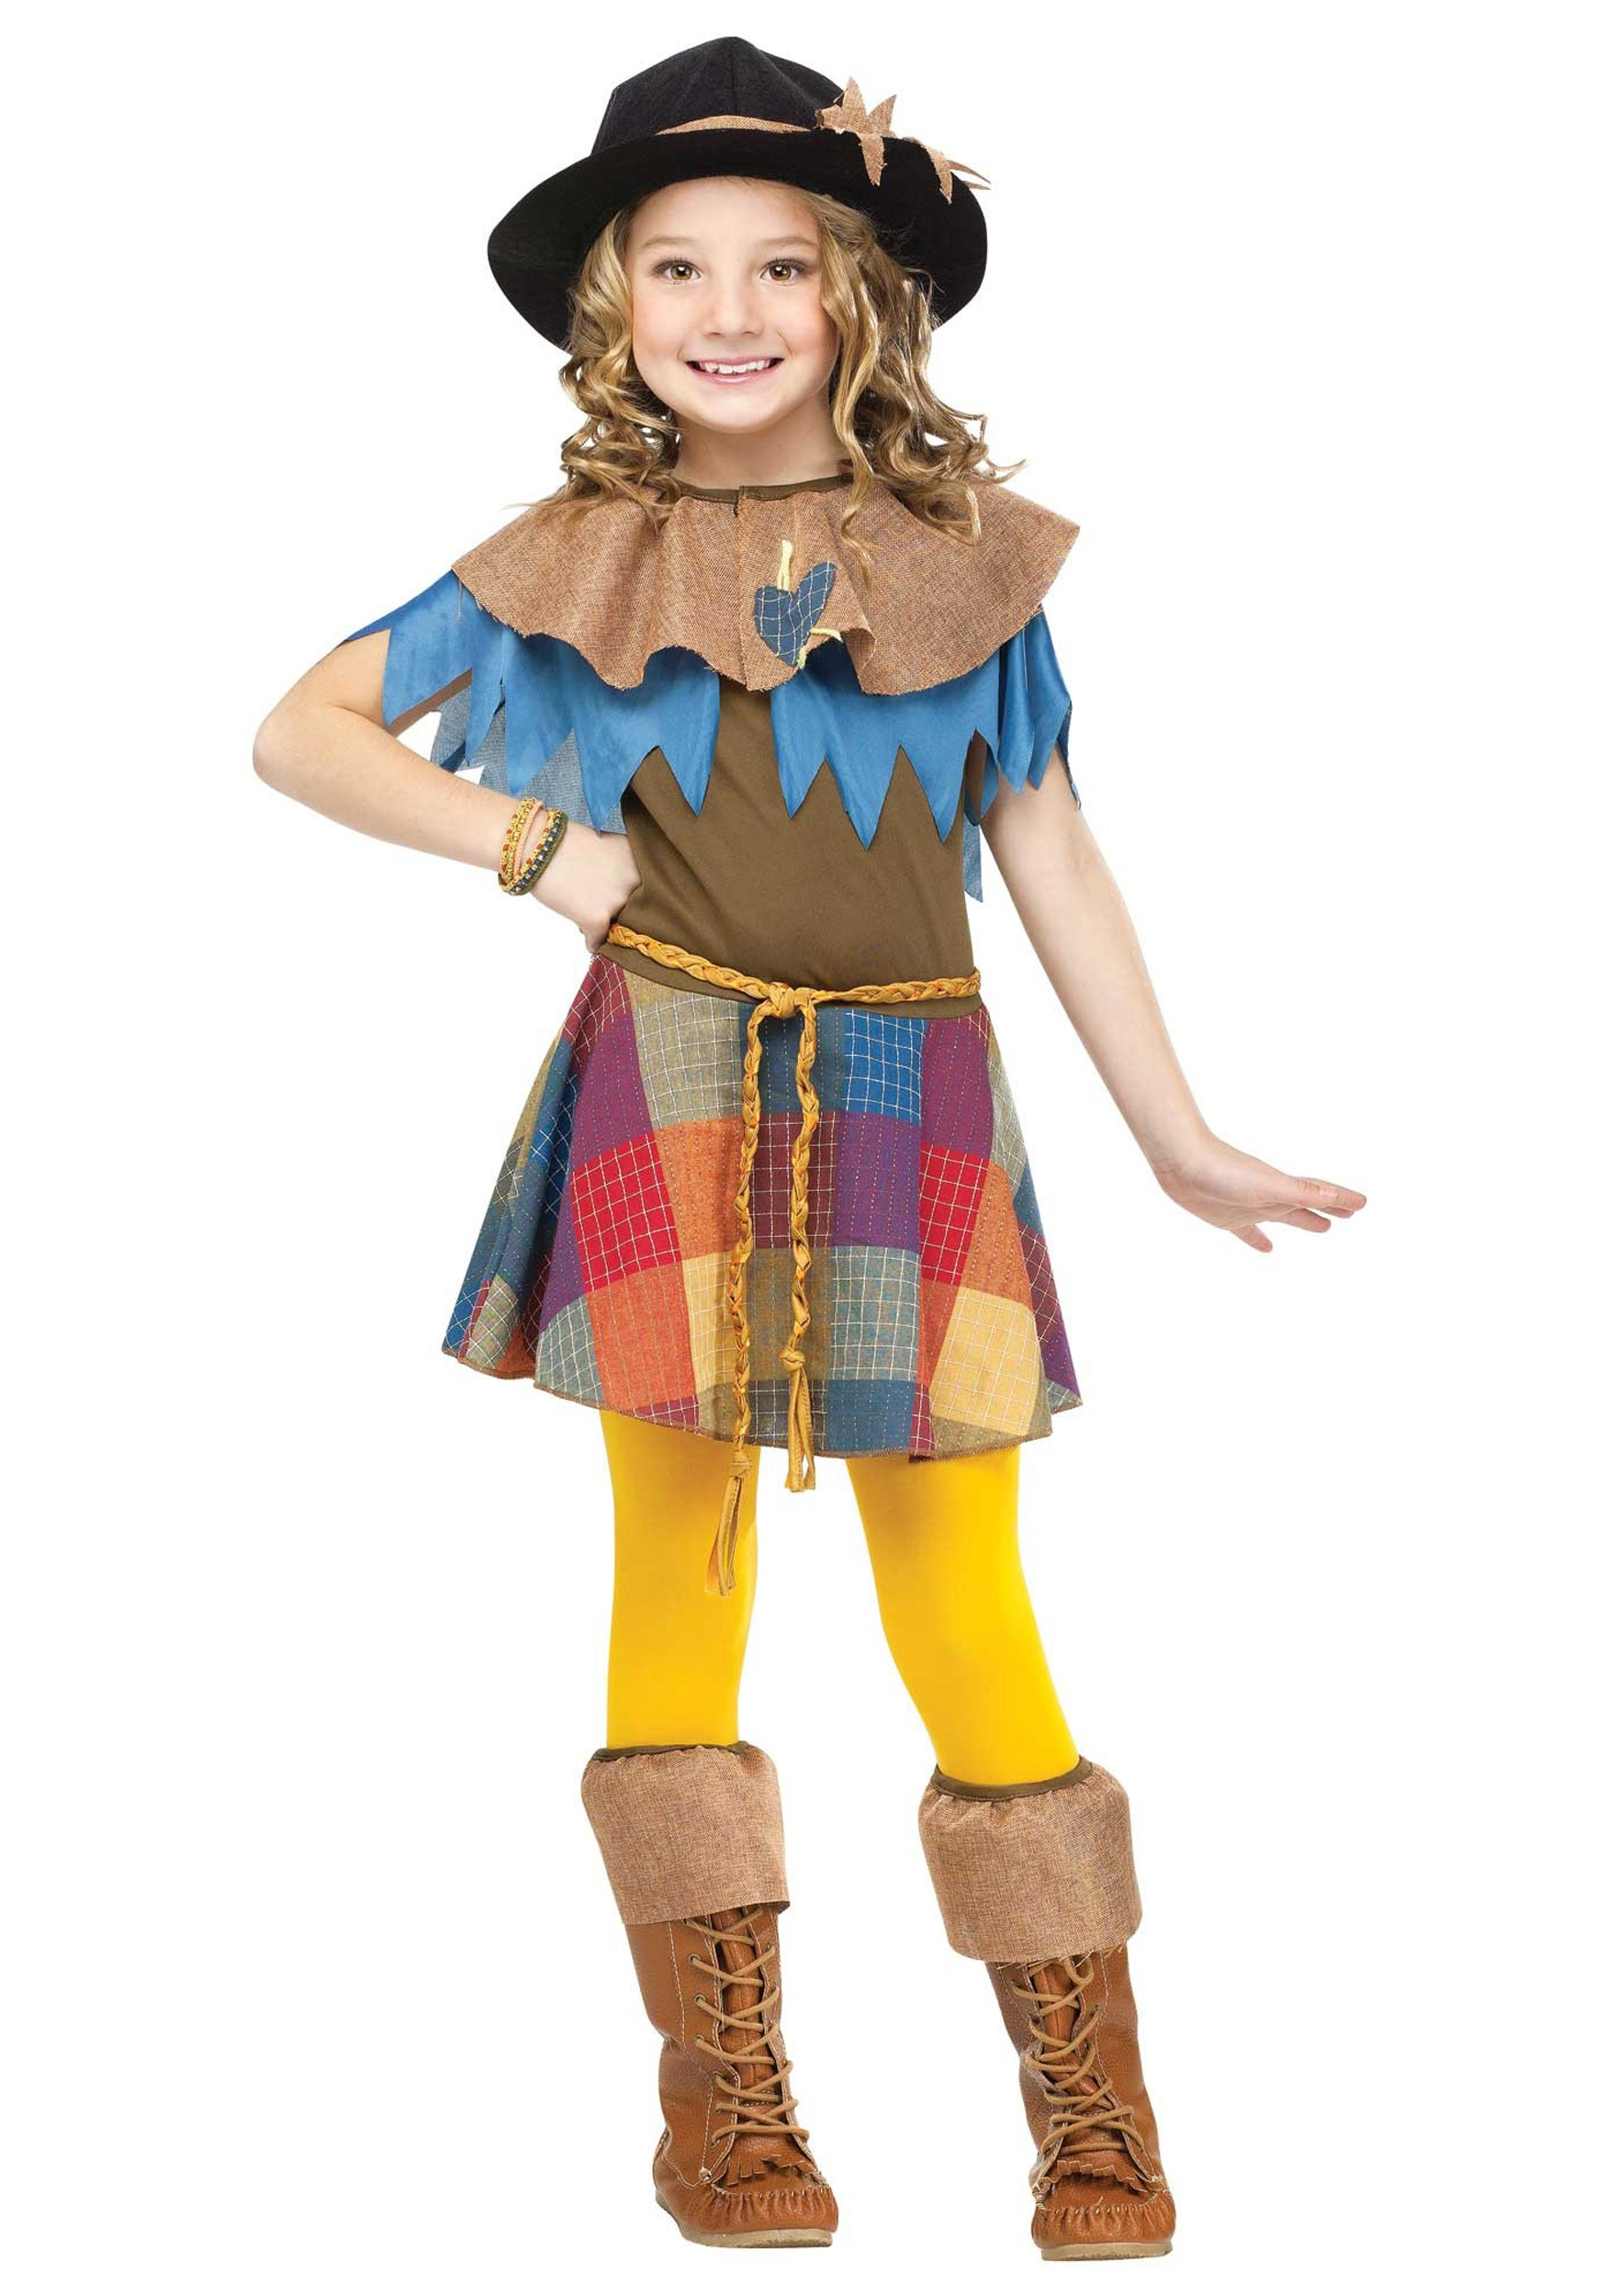 costumes wonderful wizard of oz costumes girls scarecrow costume   28Wizard Of Oz Scarecrow Costume For Girls